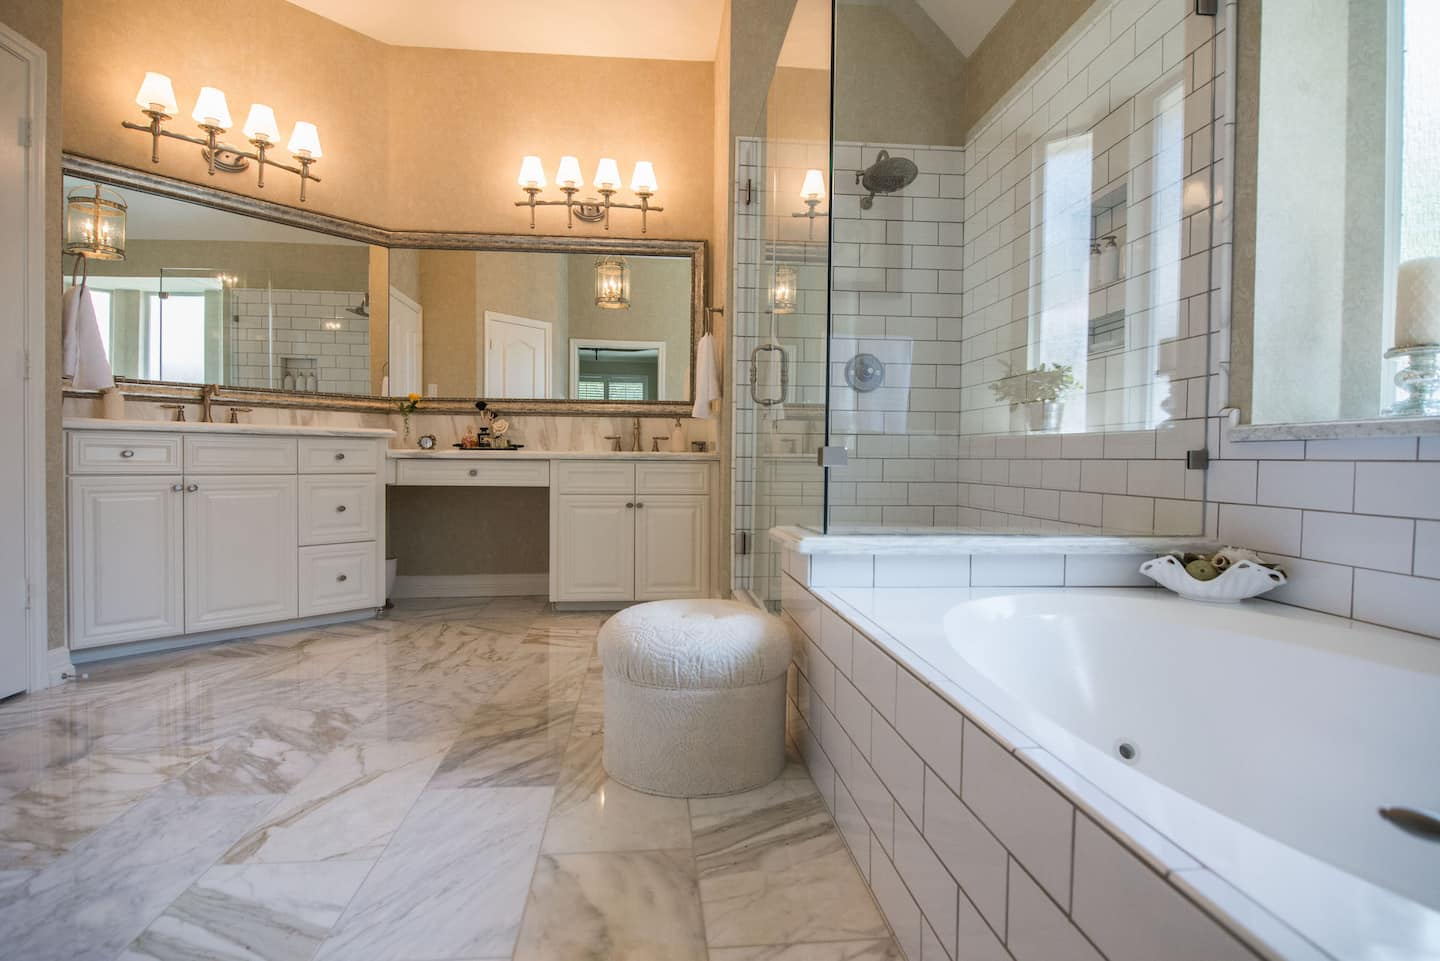 How Much Does Bathroom Tile Installation Cost? | Angie\'s List